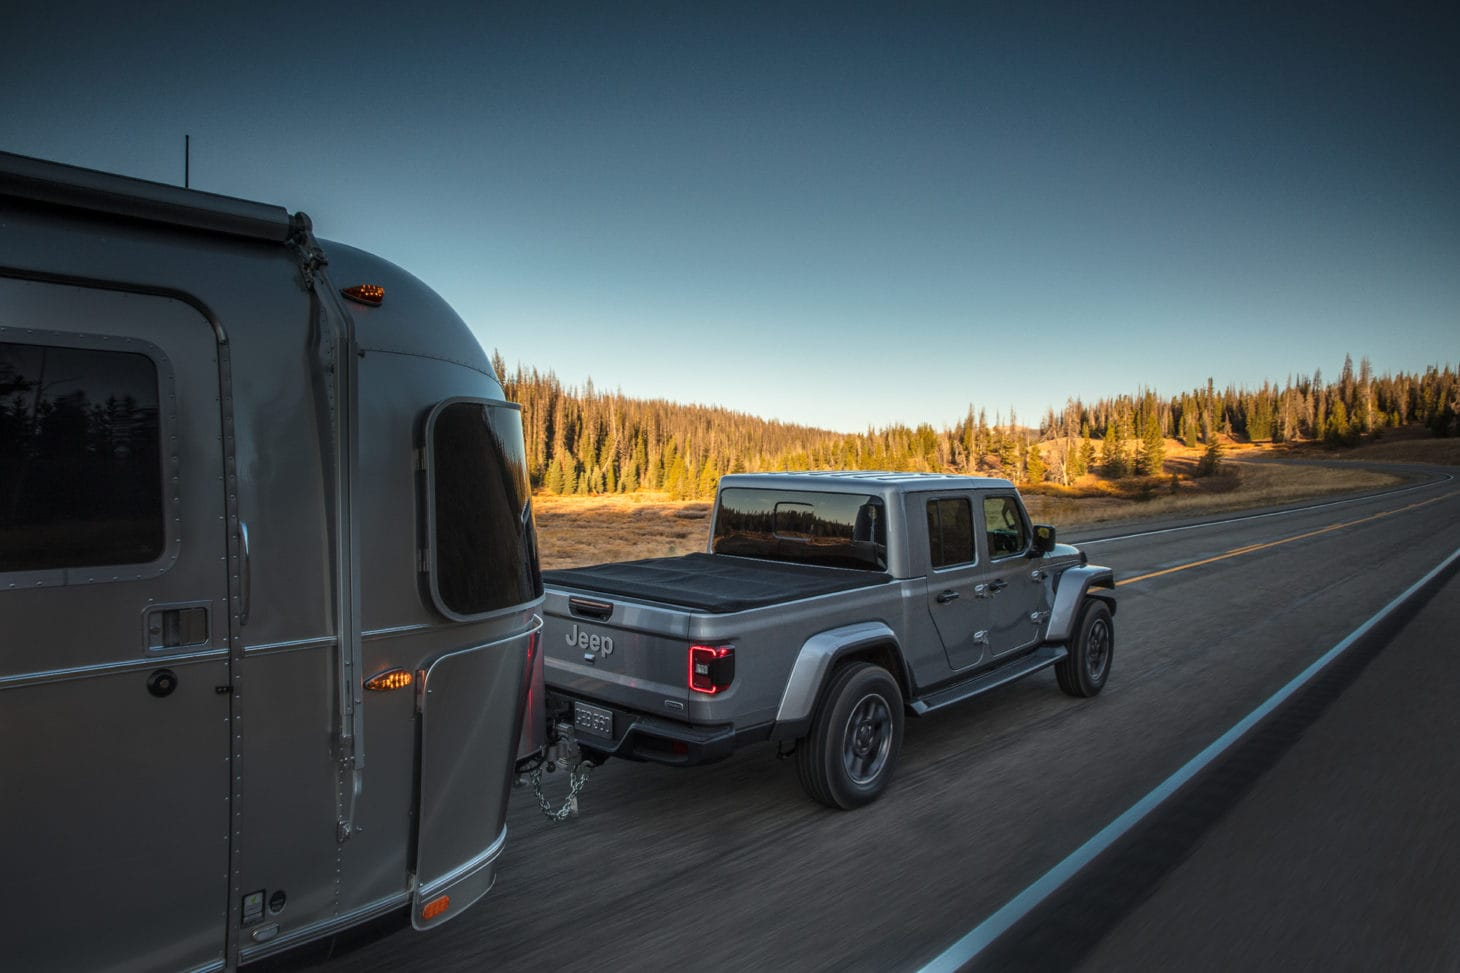 Truck towing an Airstream travel trailer on road